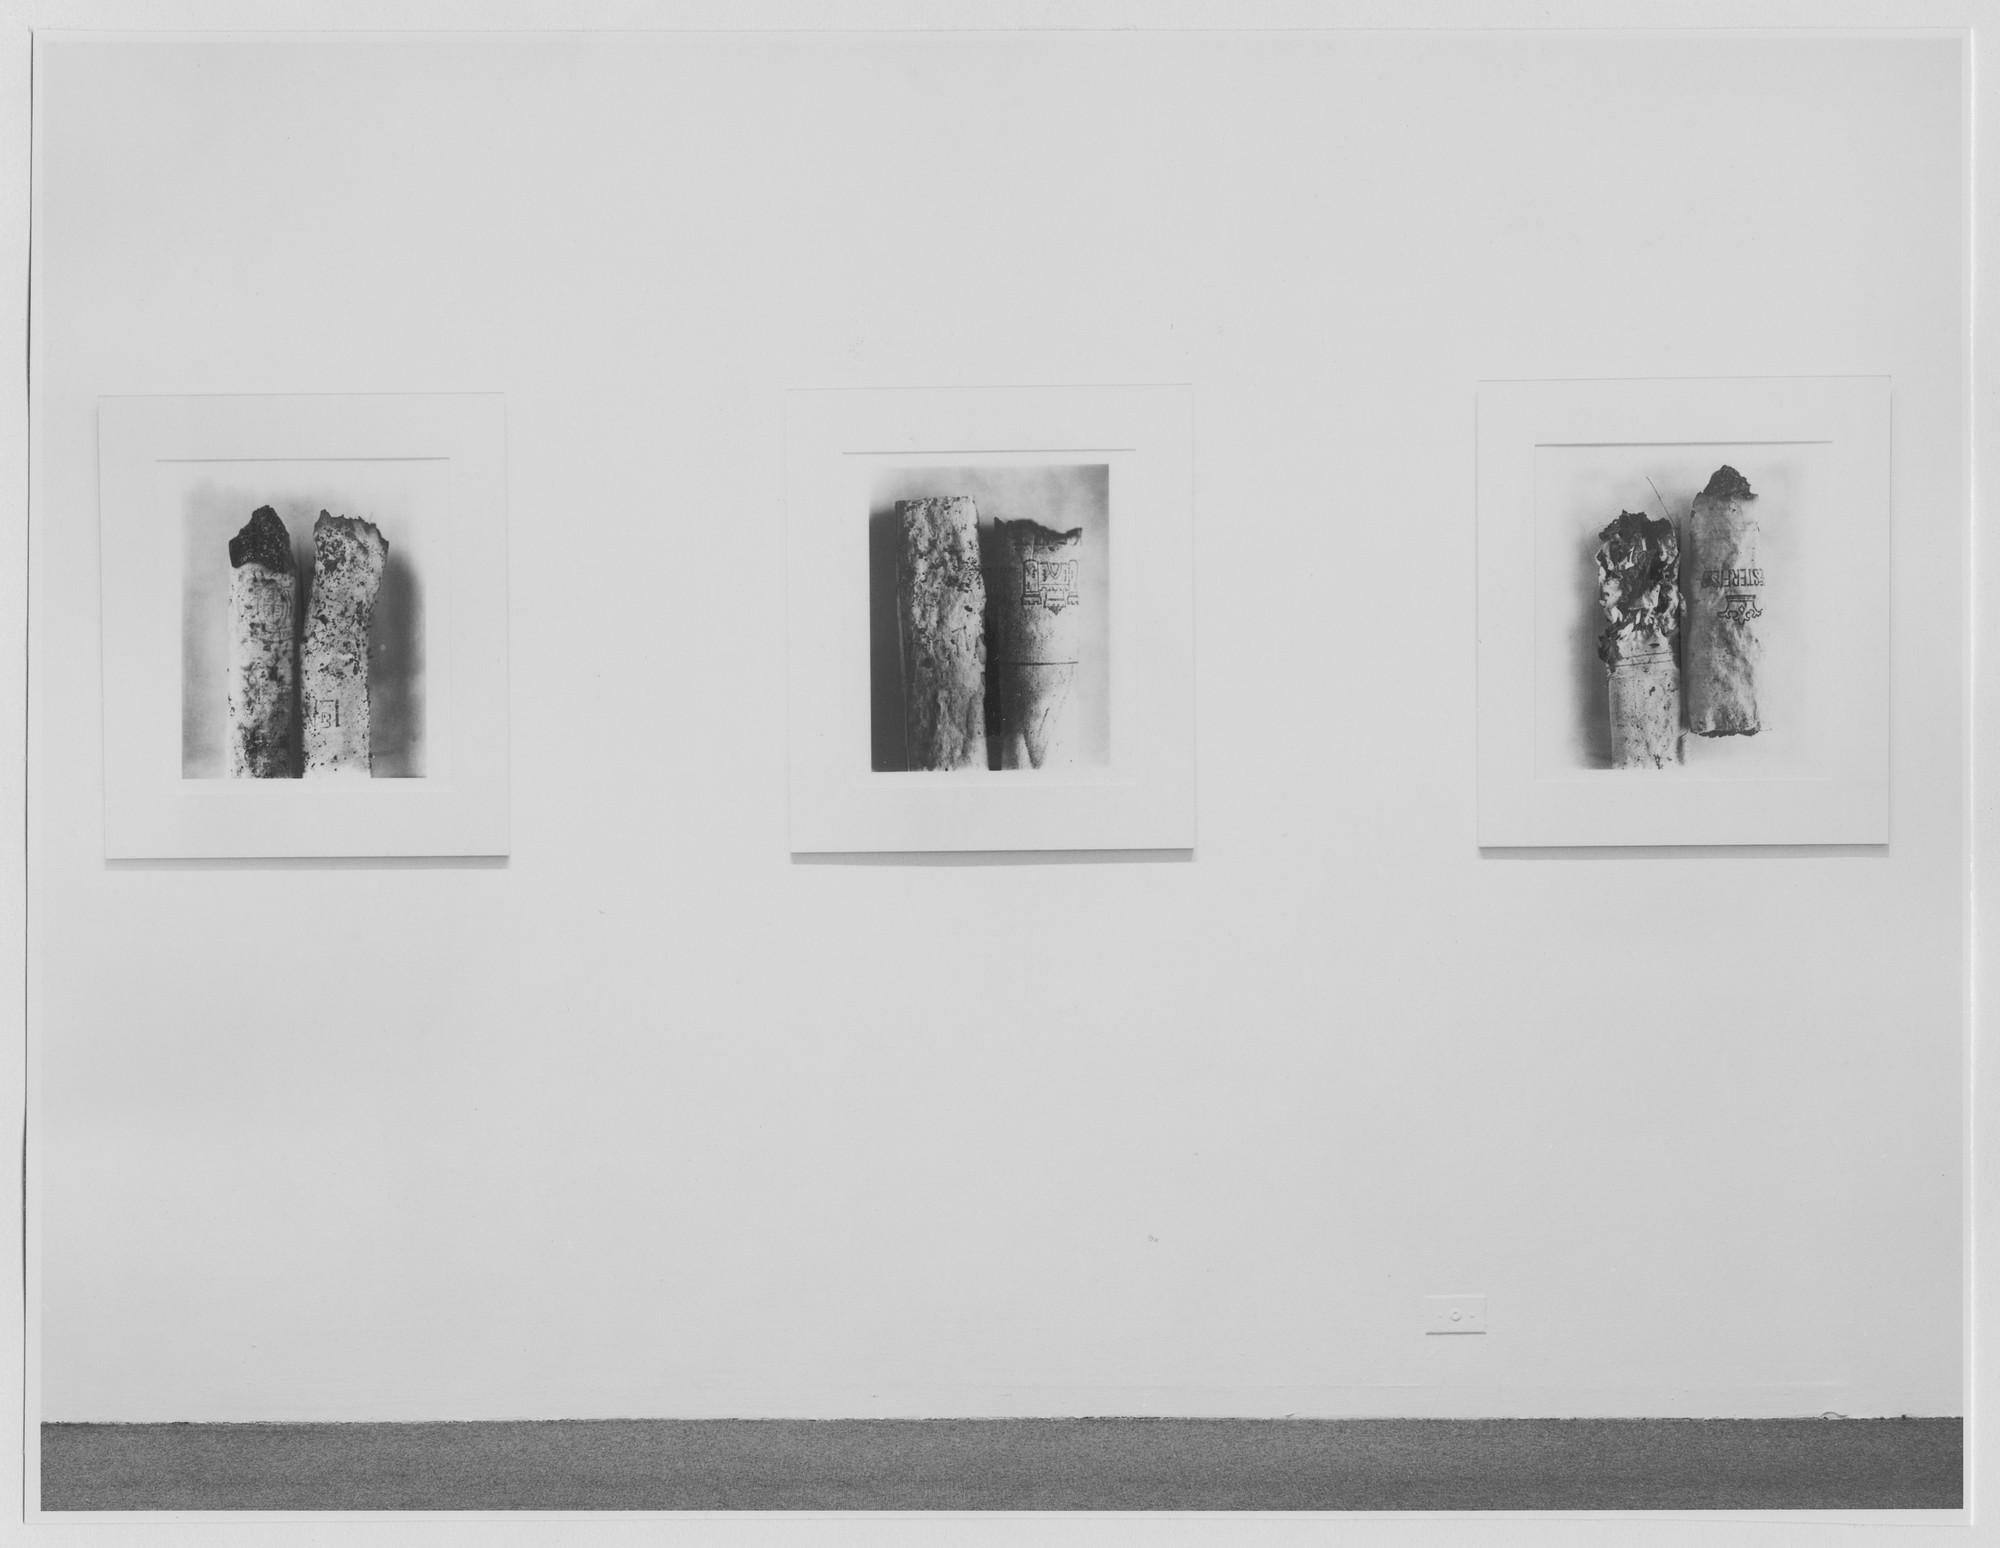 "Installation view of the exhibition, ""Irving Penn Recent Works."" May 19, 1975–August 3, 1975. Photographic Archive. The Museum of Modern Art Archives, New York. IN1099a.1. Photograph by Katherine Keller."